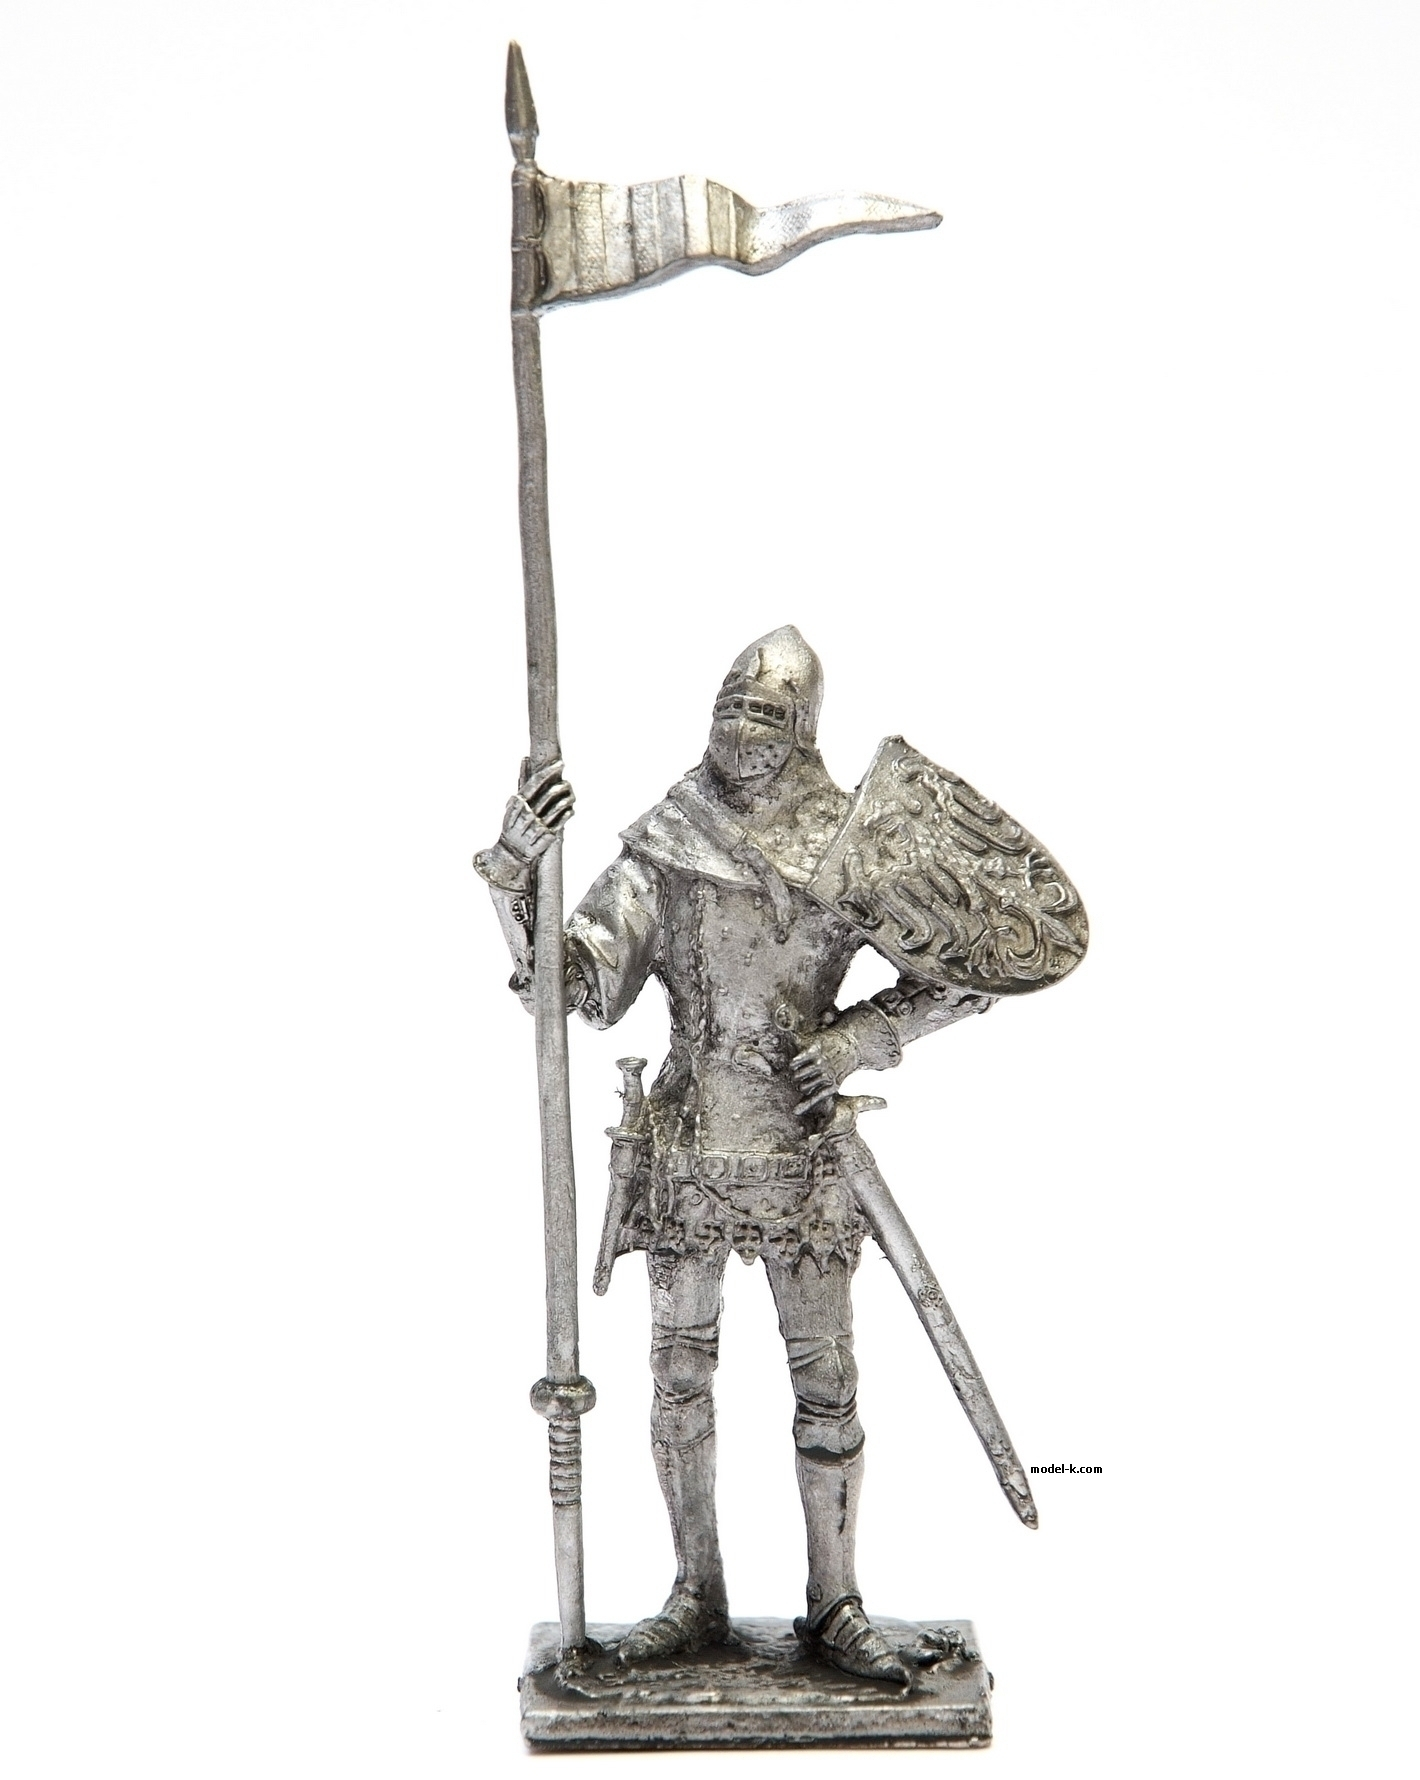 Bohemian knight tin 54mm soldier